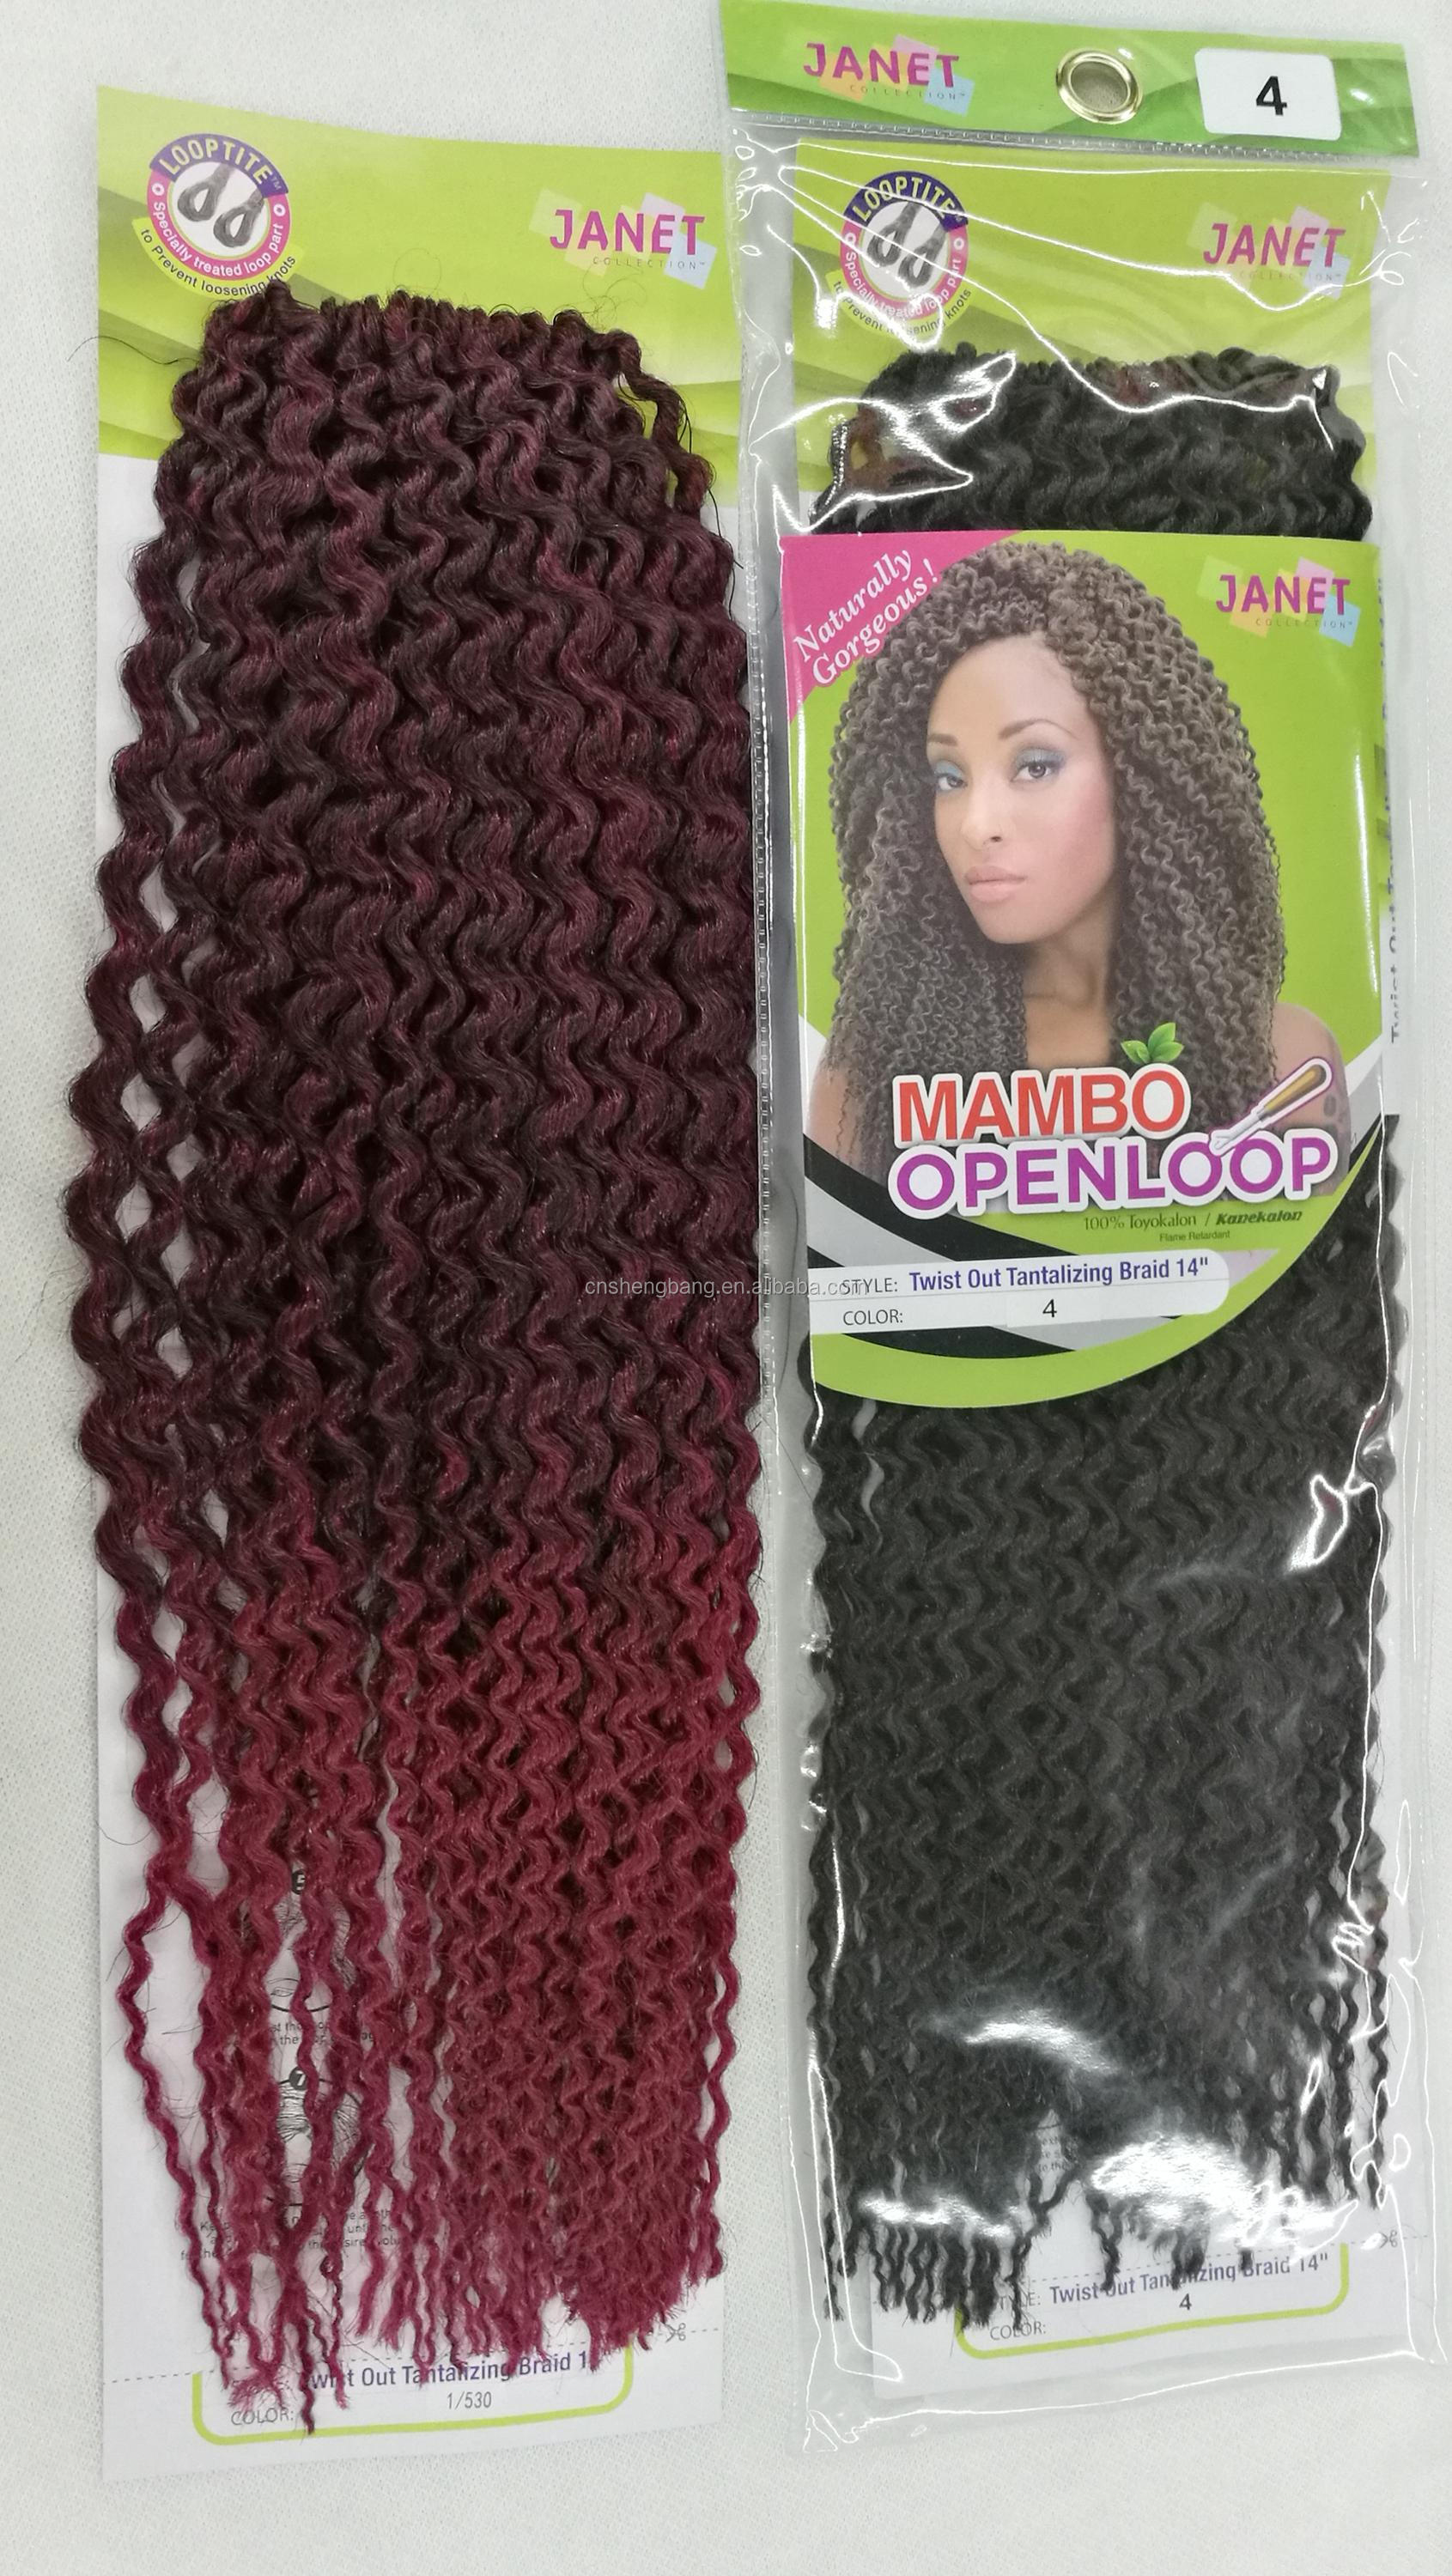 "mambo openloop twist out tantalizing braid 14"" Black 4# and 1/530,afro twist braid"